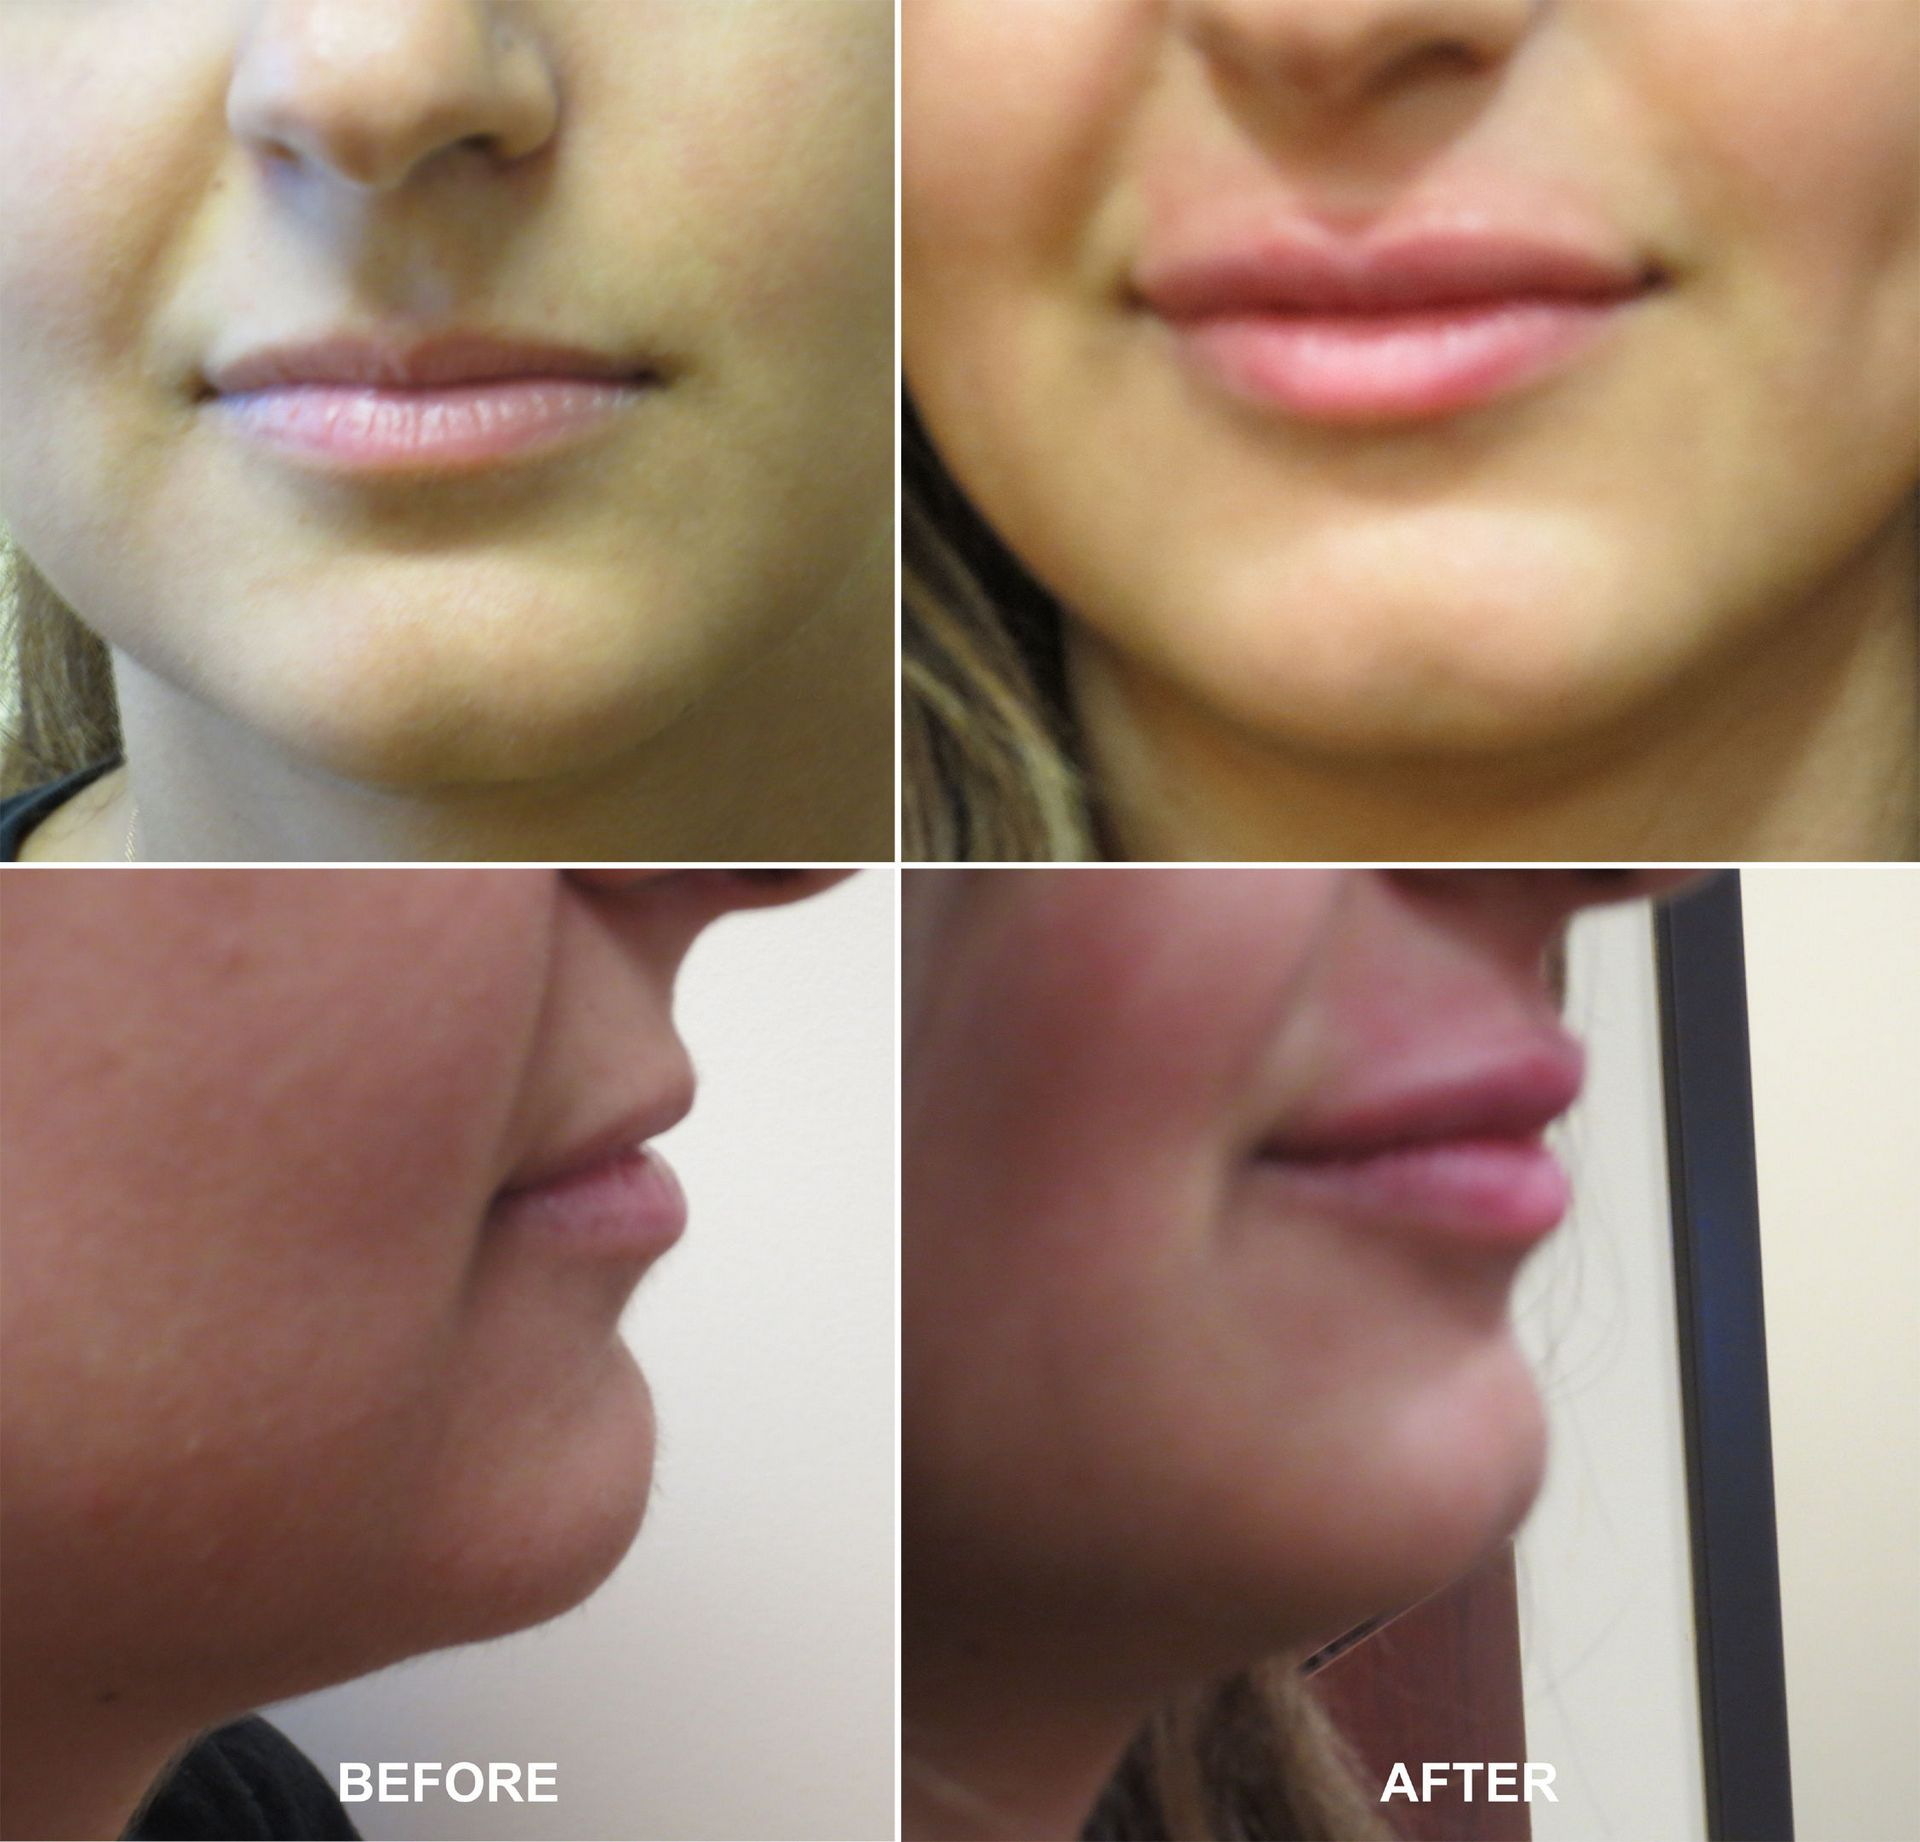 Lip Augmentation - Pictures Before and After Lip Fillers Injection